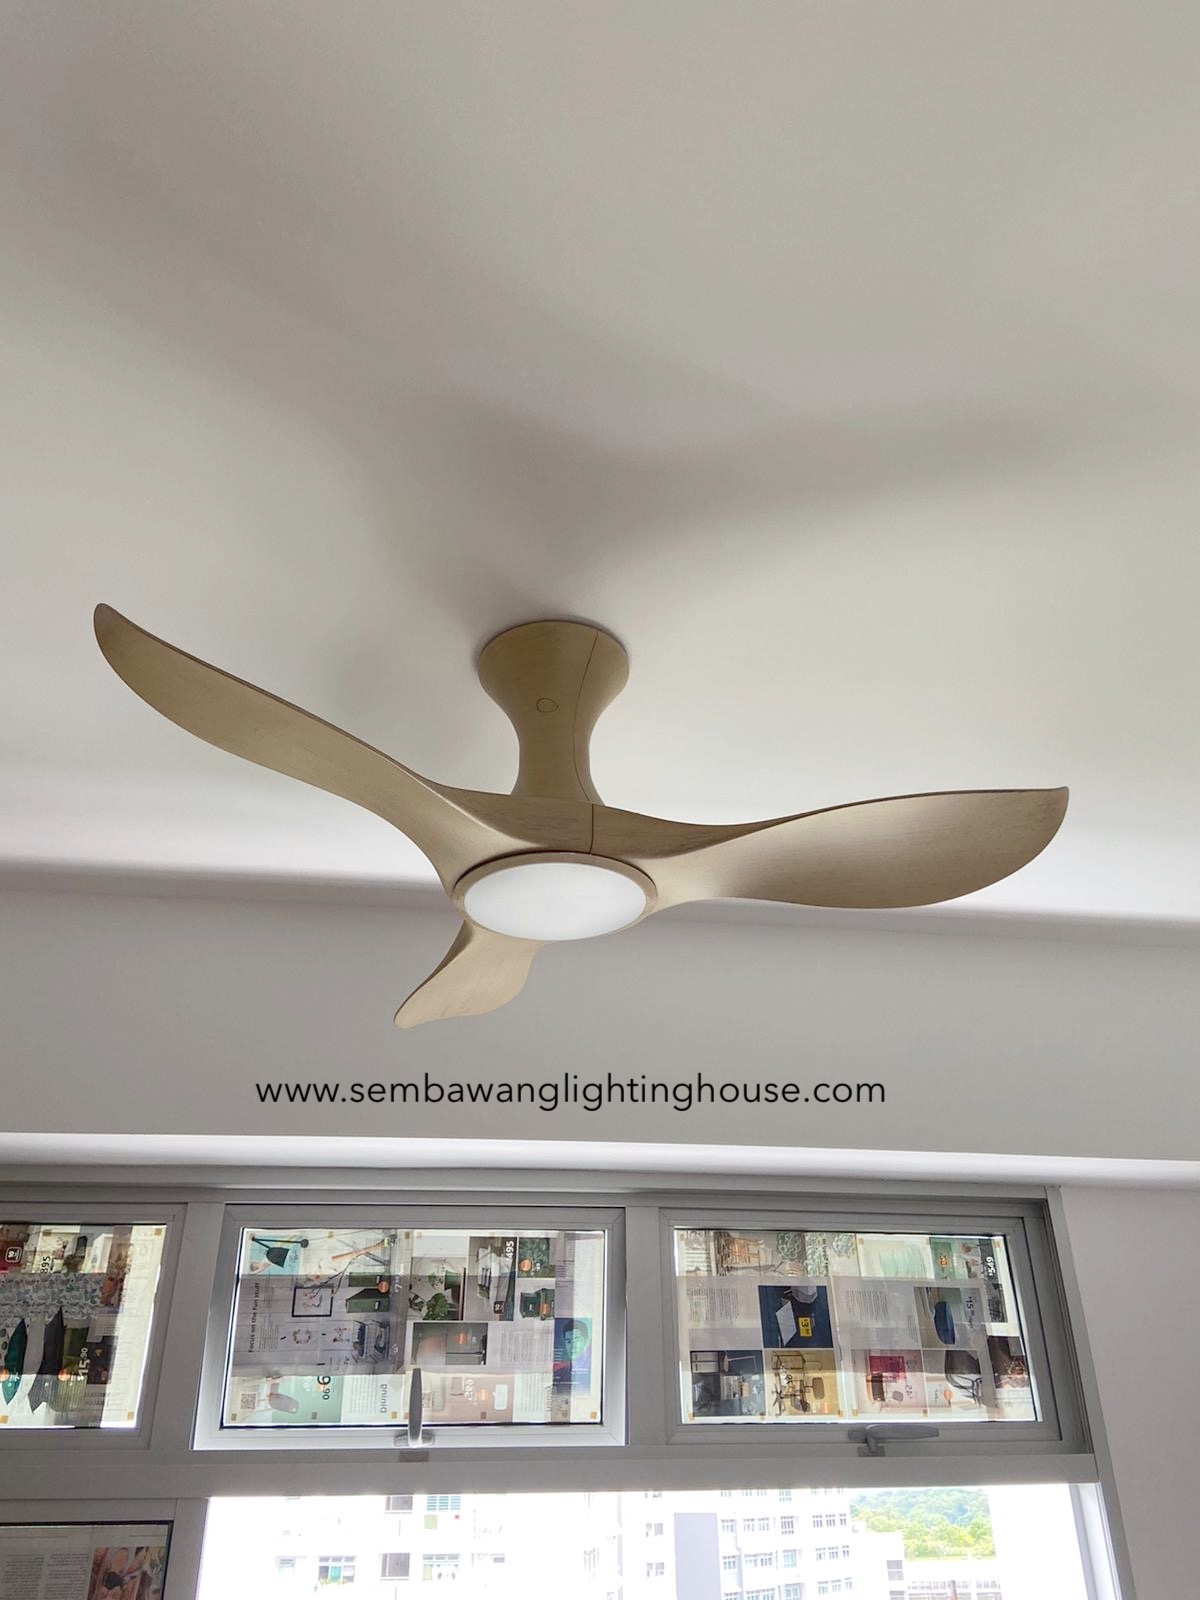 efenz-hugger-ceiling-fan-with-light-maple-wood-sembawang-lighting-house-01.jpg